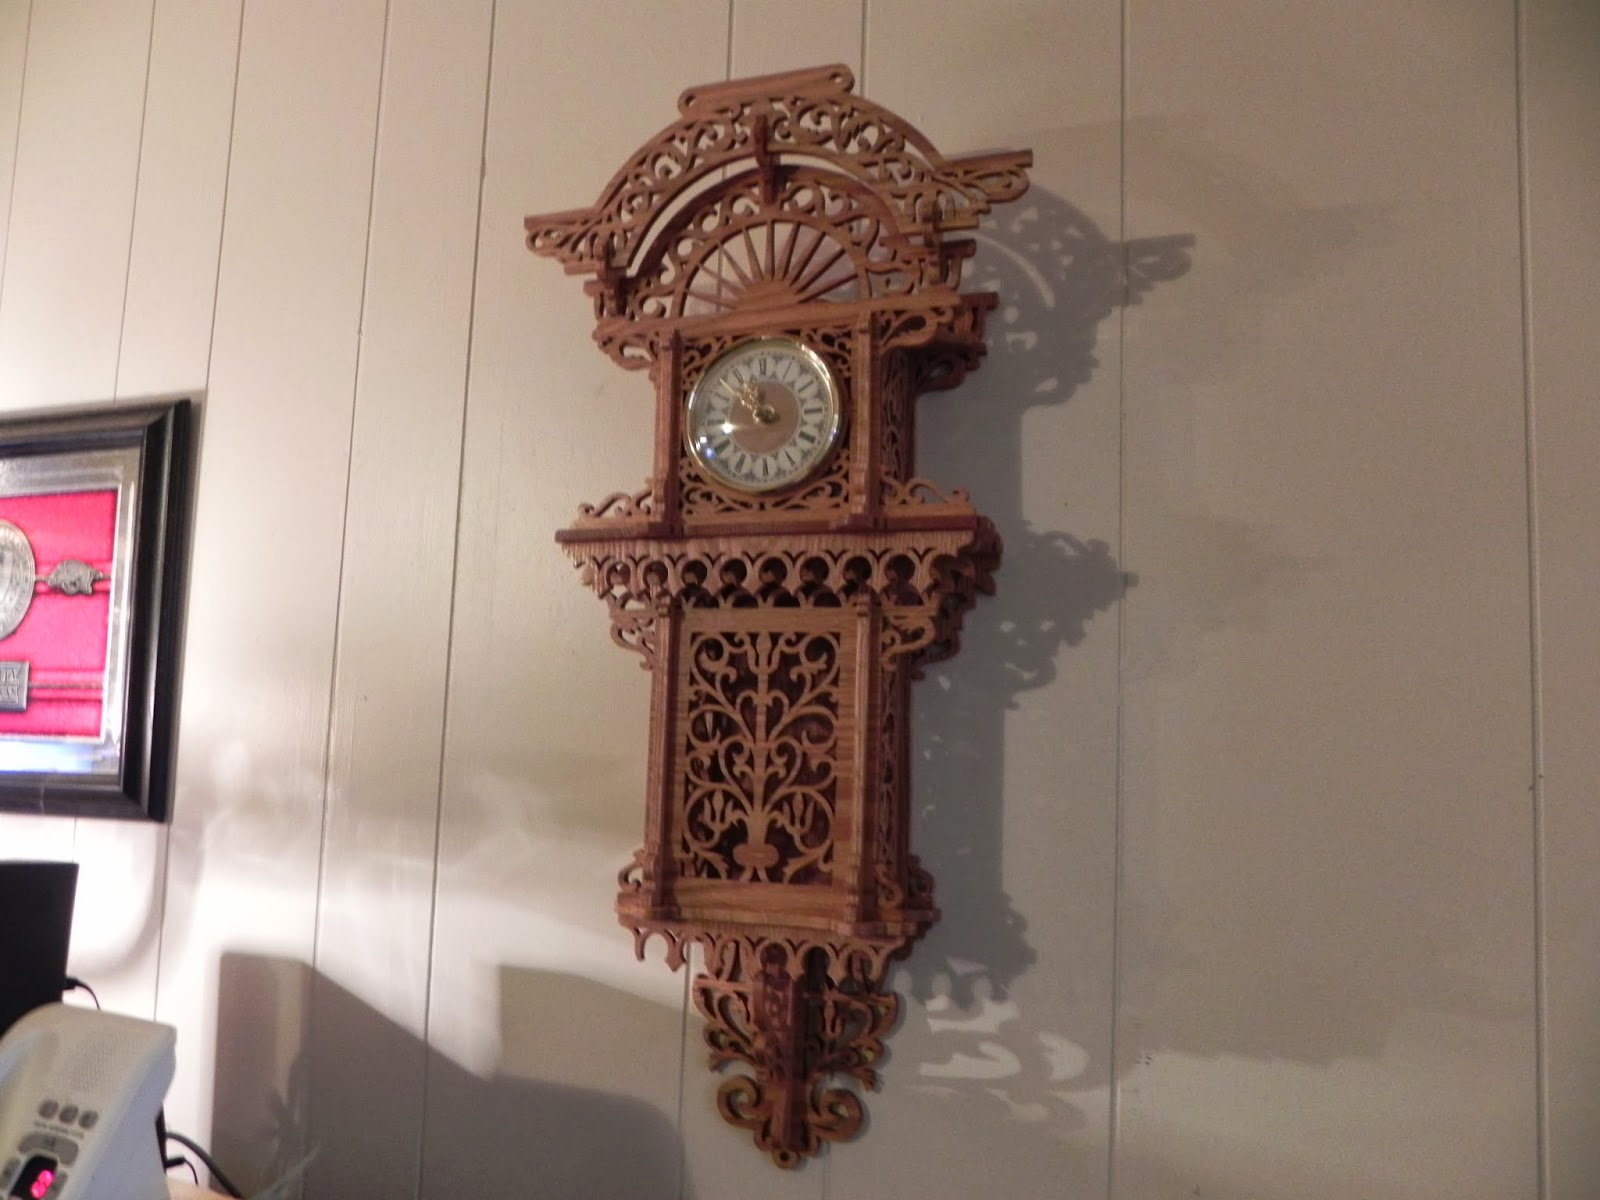 Wall Hanging Grandfather Clock reaganite71's blog: it is done! wall hanging grandfather clock is